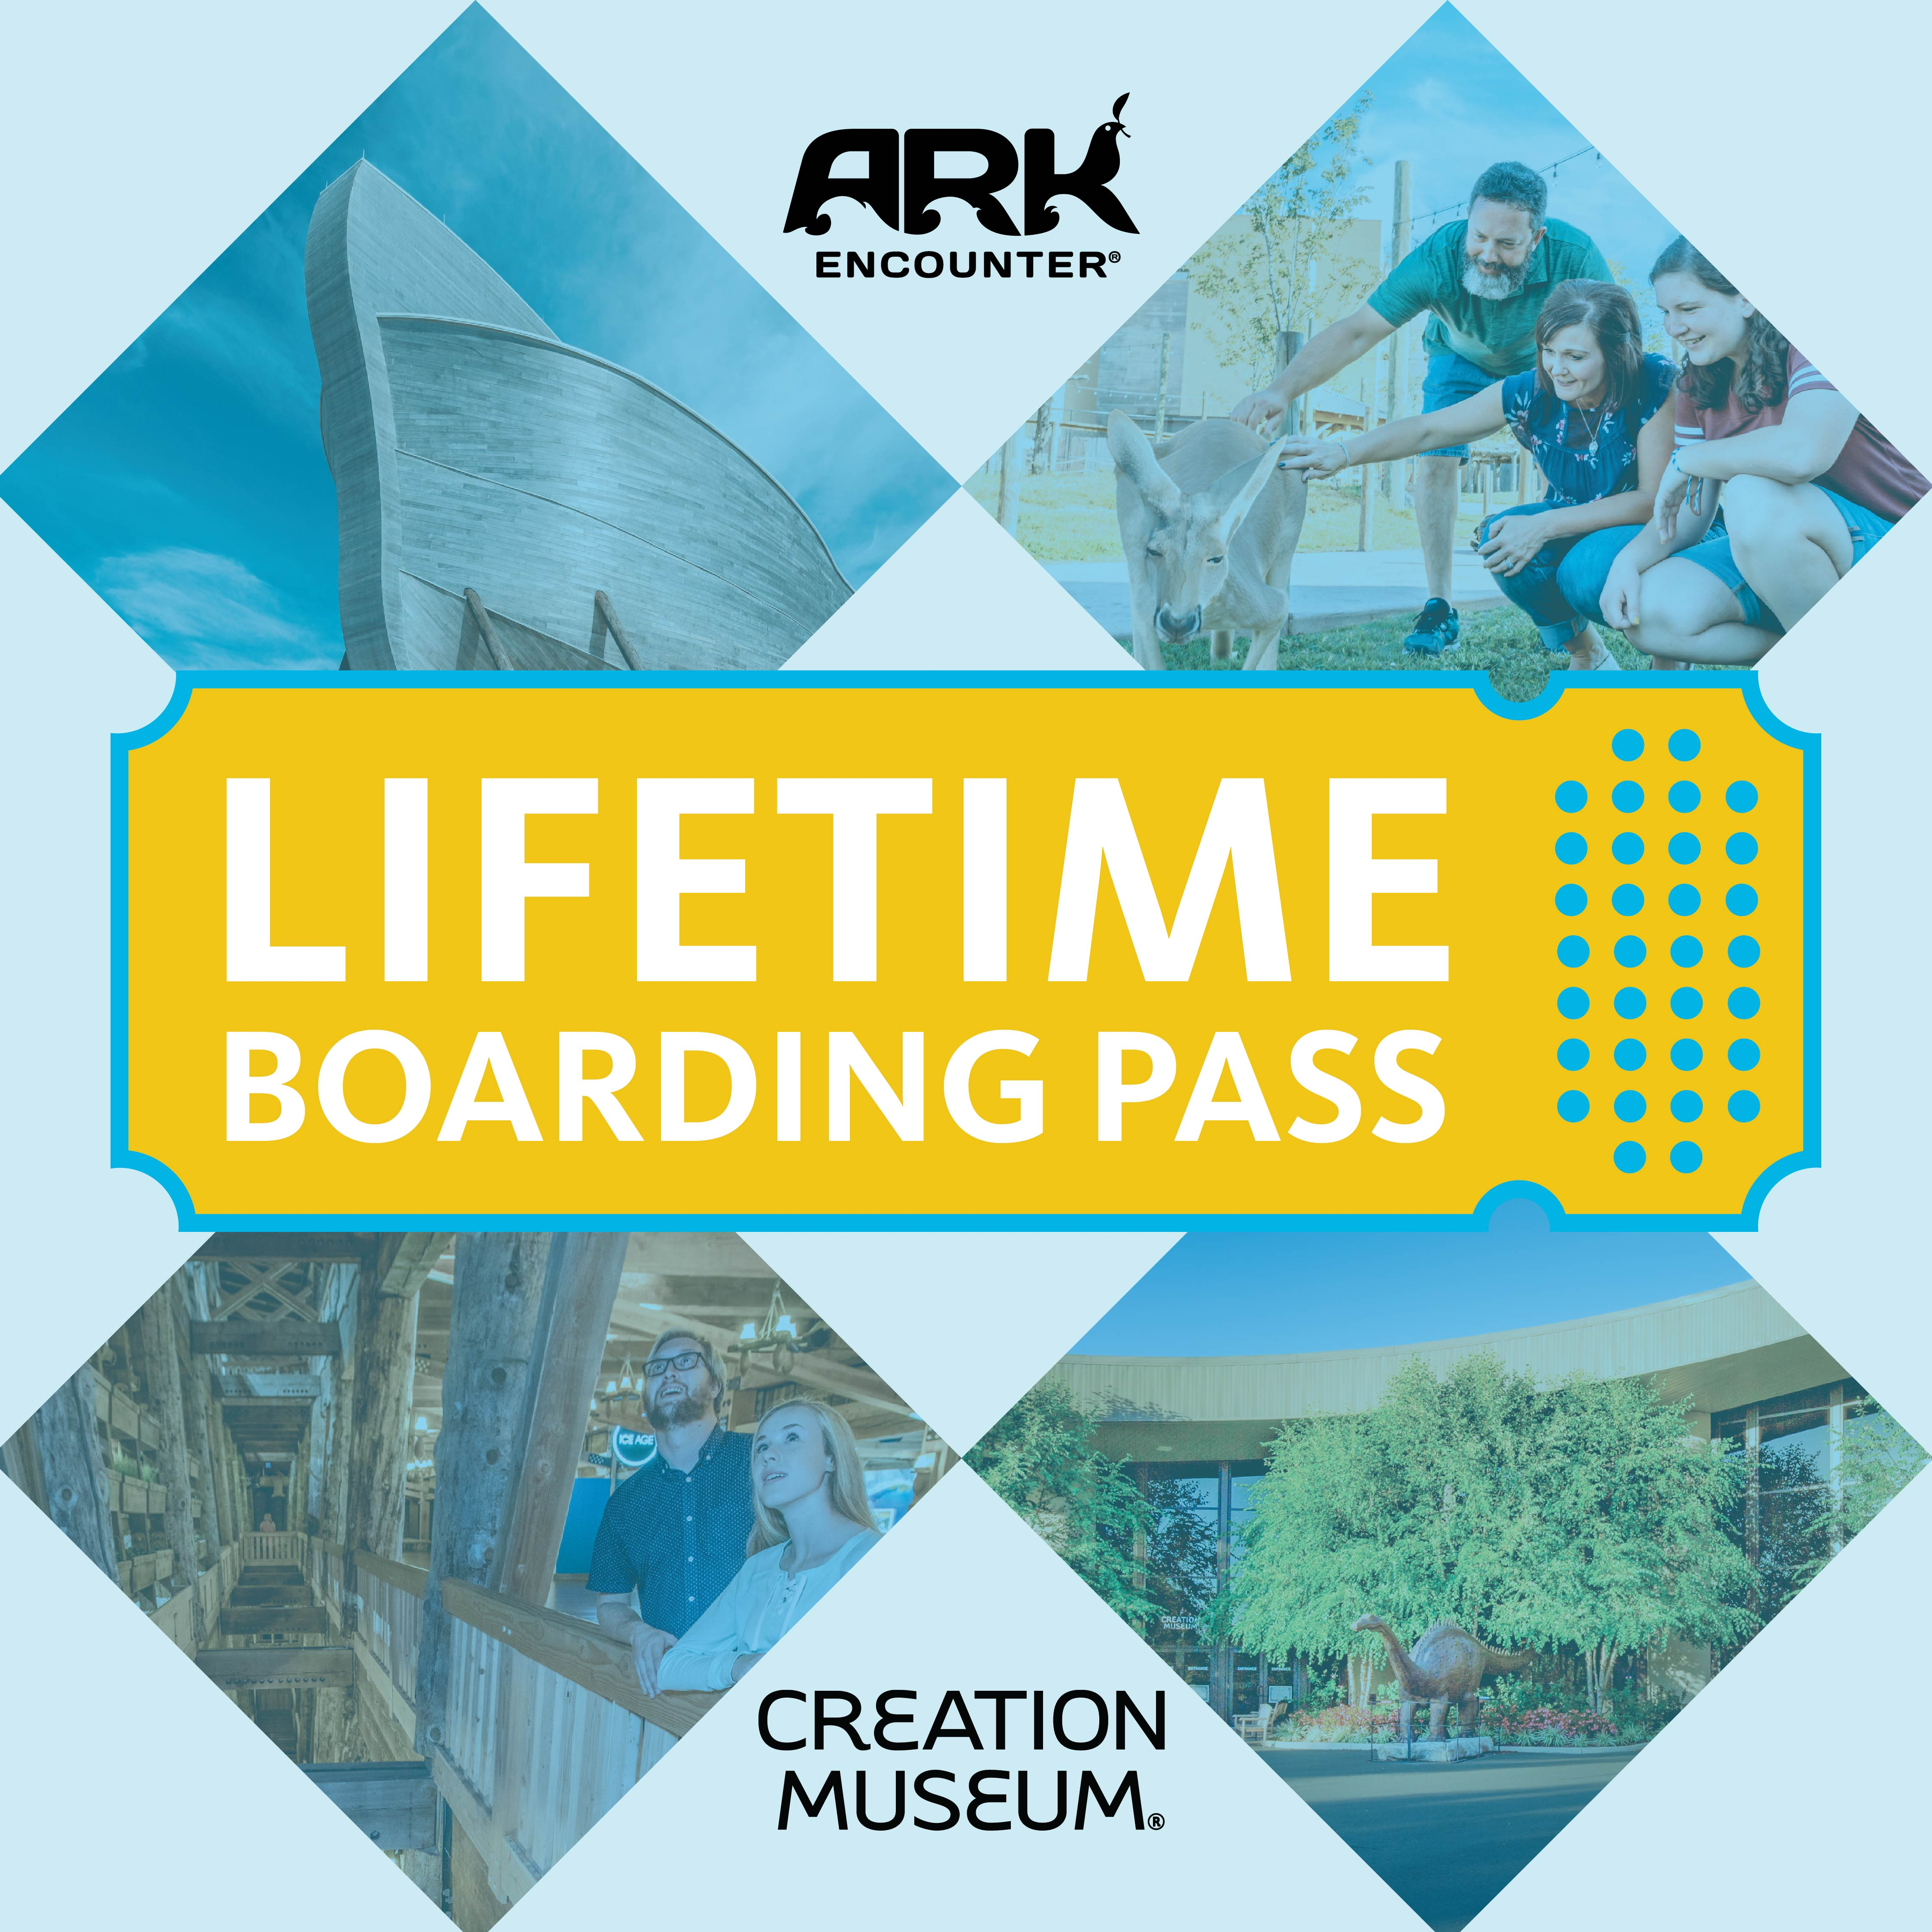 Liftime Boarding Pass